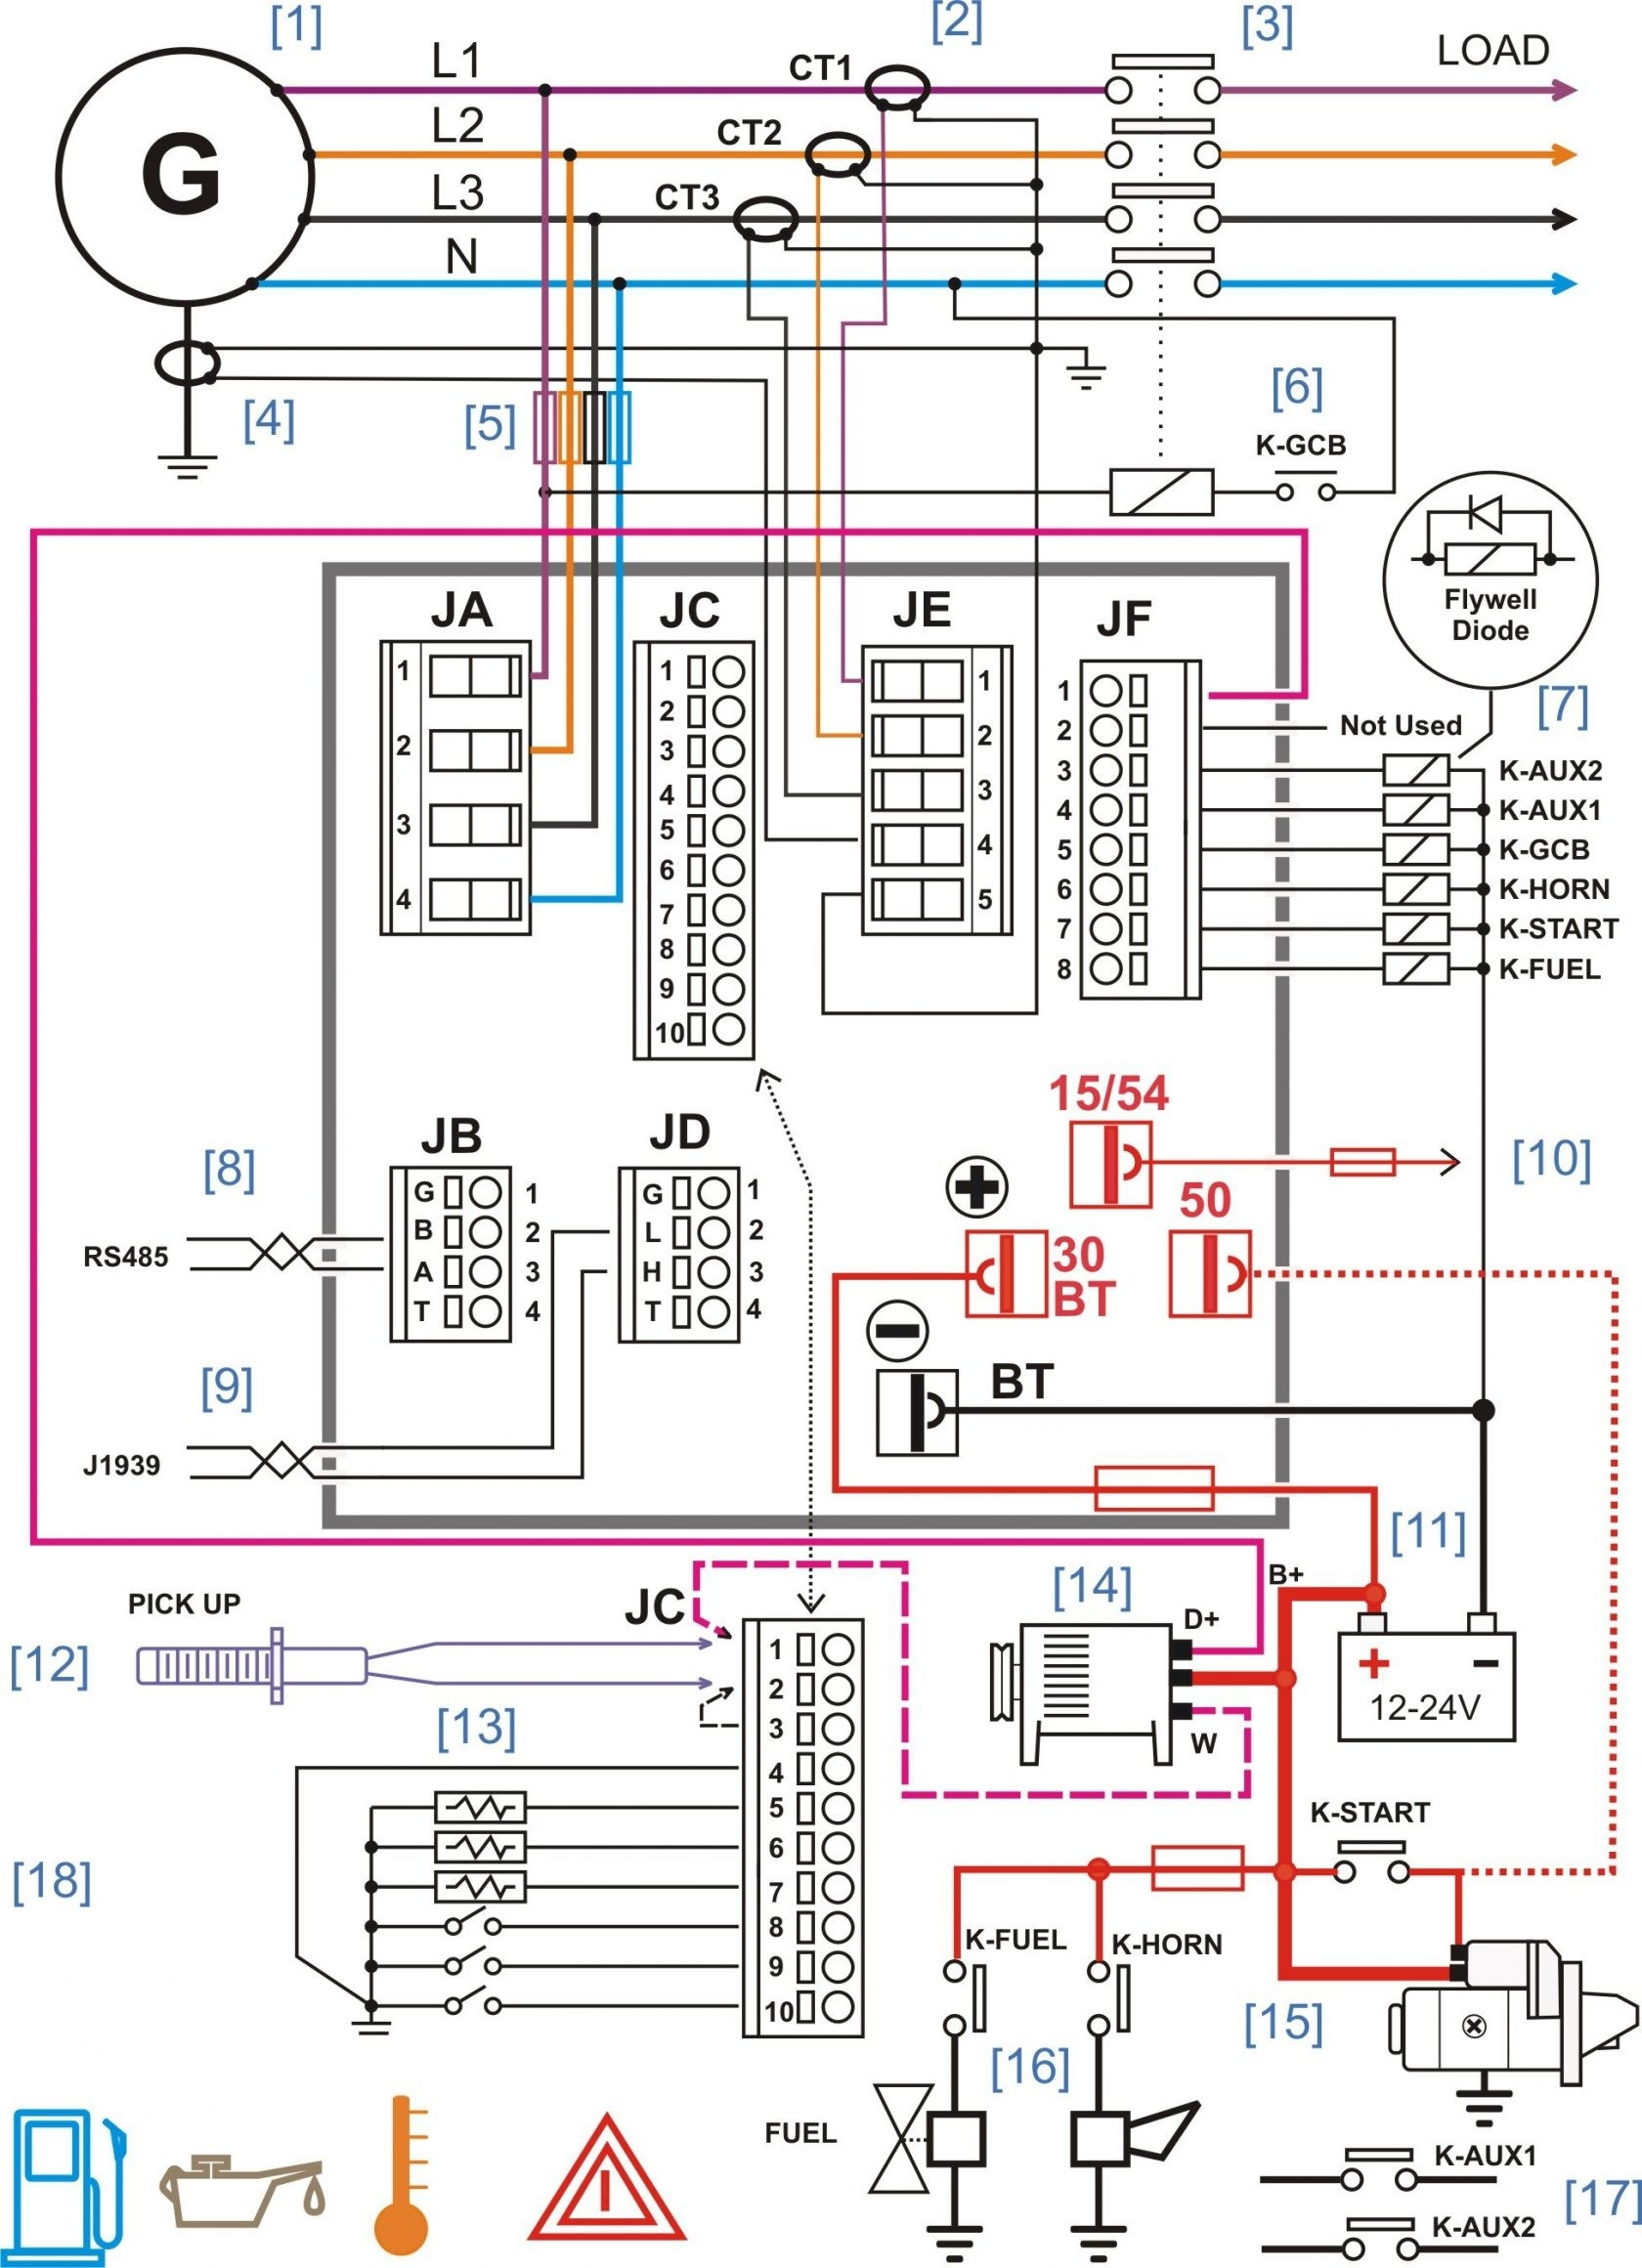 Acura Car Stereo Wiring Diagram - Wiring Diagram Schematics on